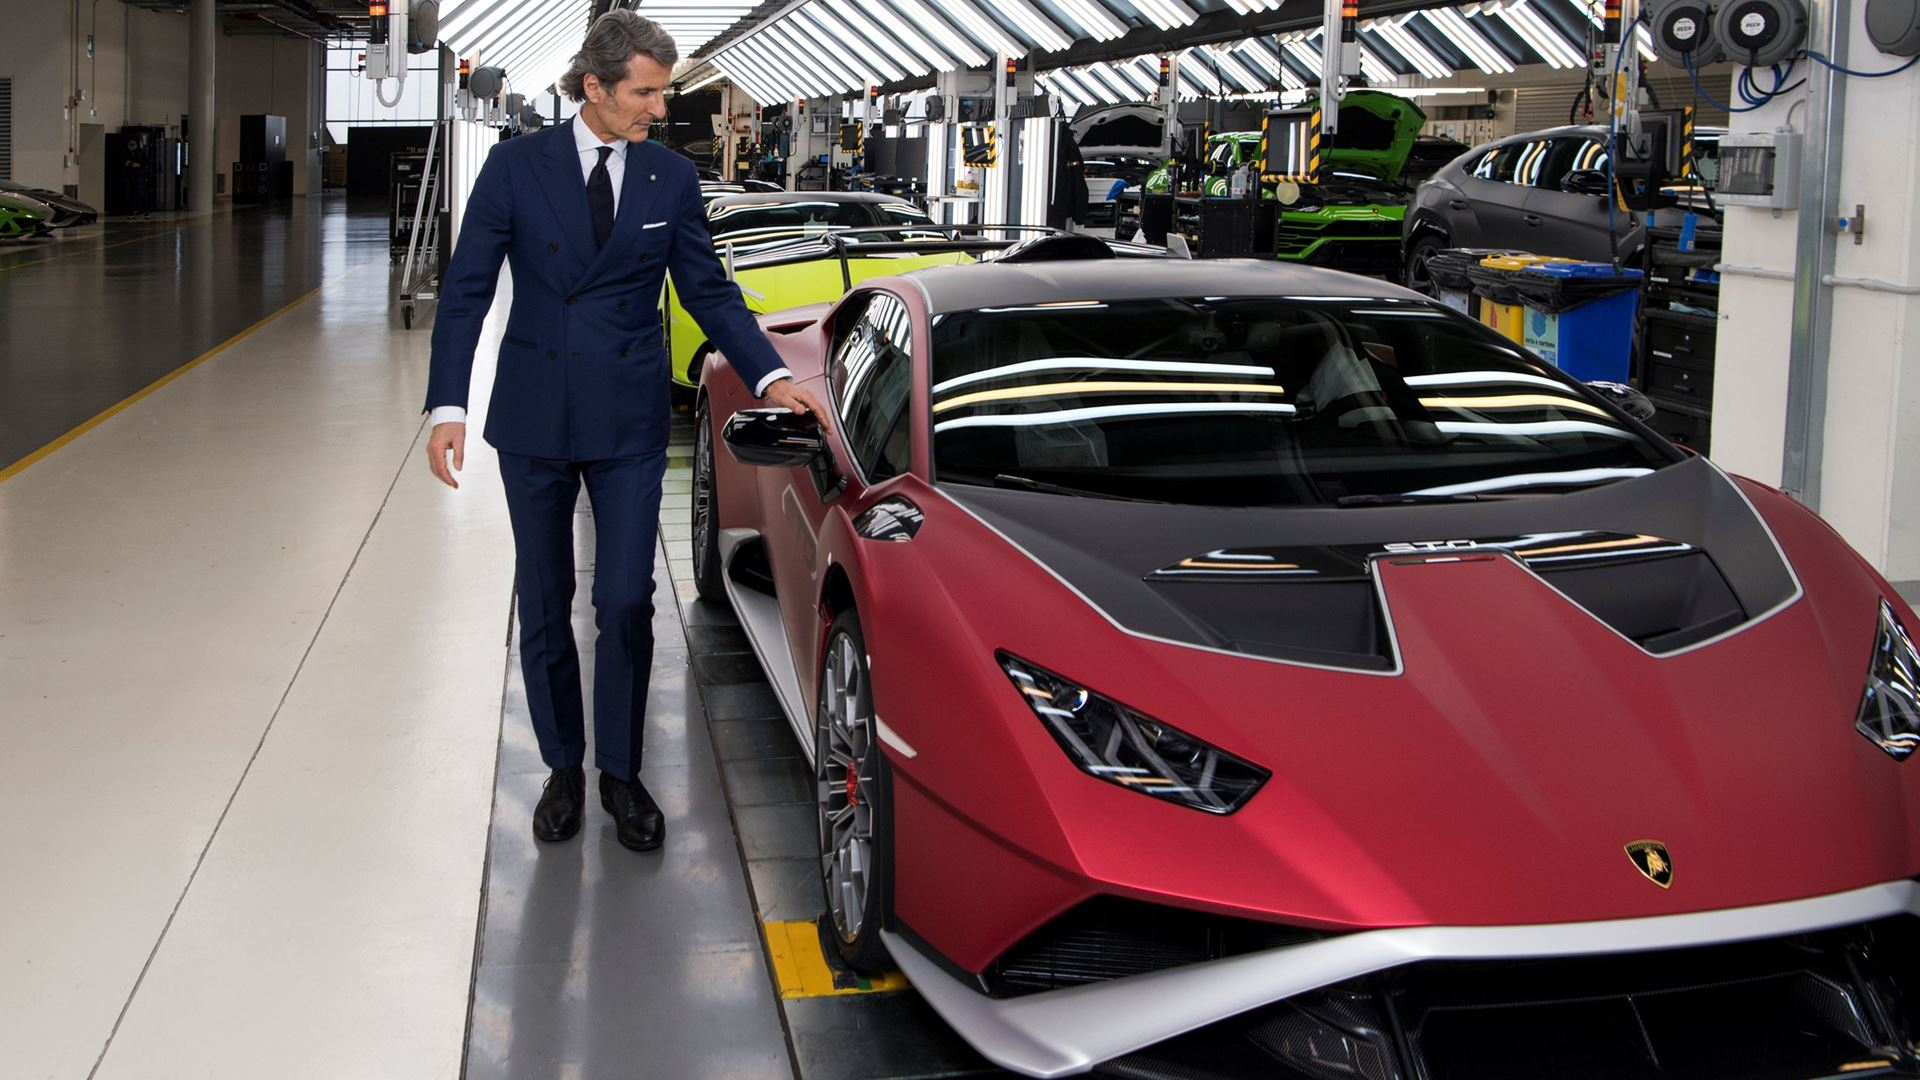 Automobili Lamborghini: Strong profitability and second-best year ever for turnover and sales - Image 4